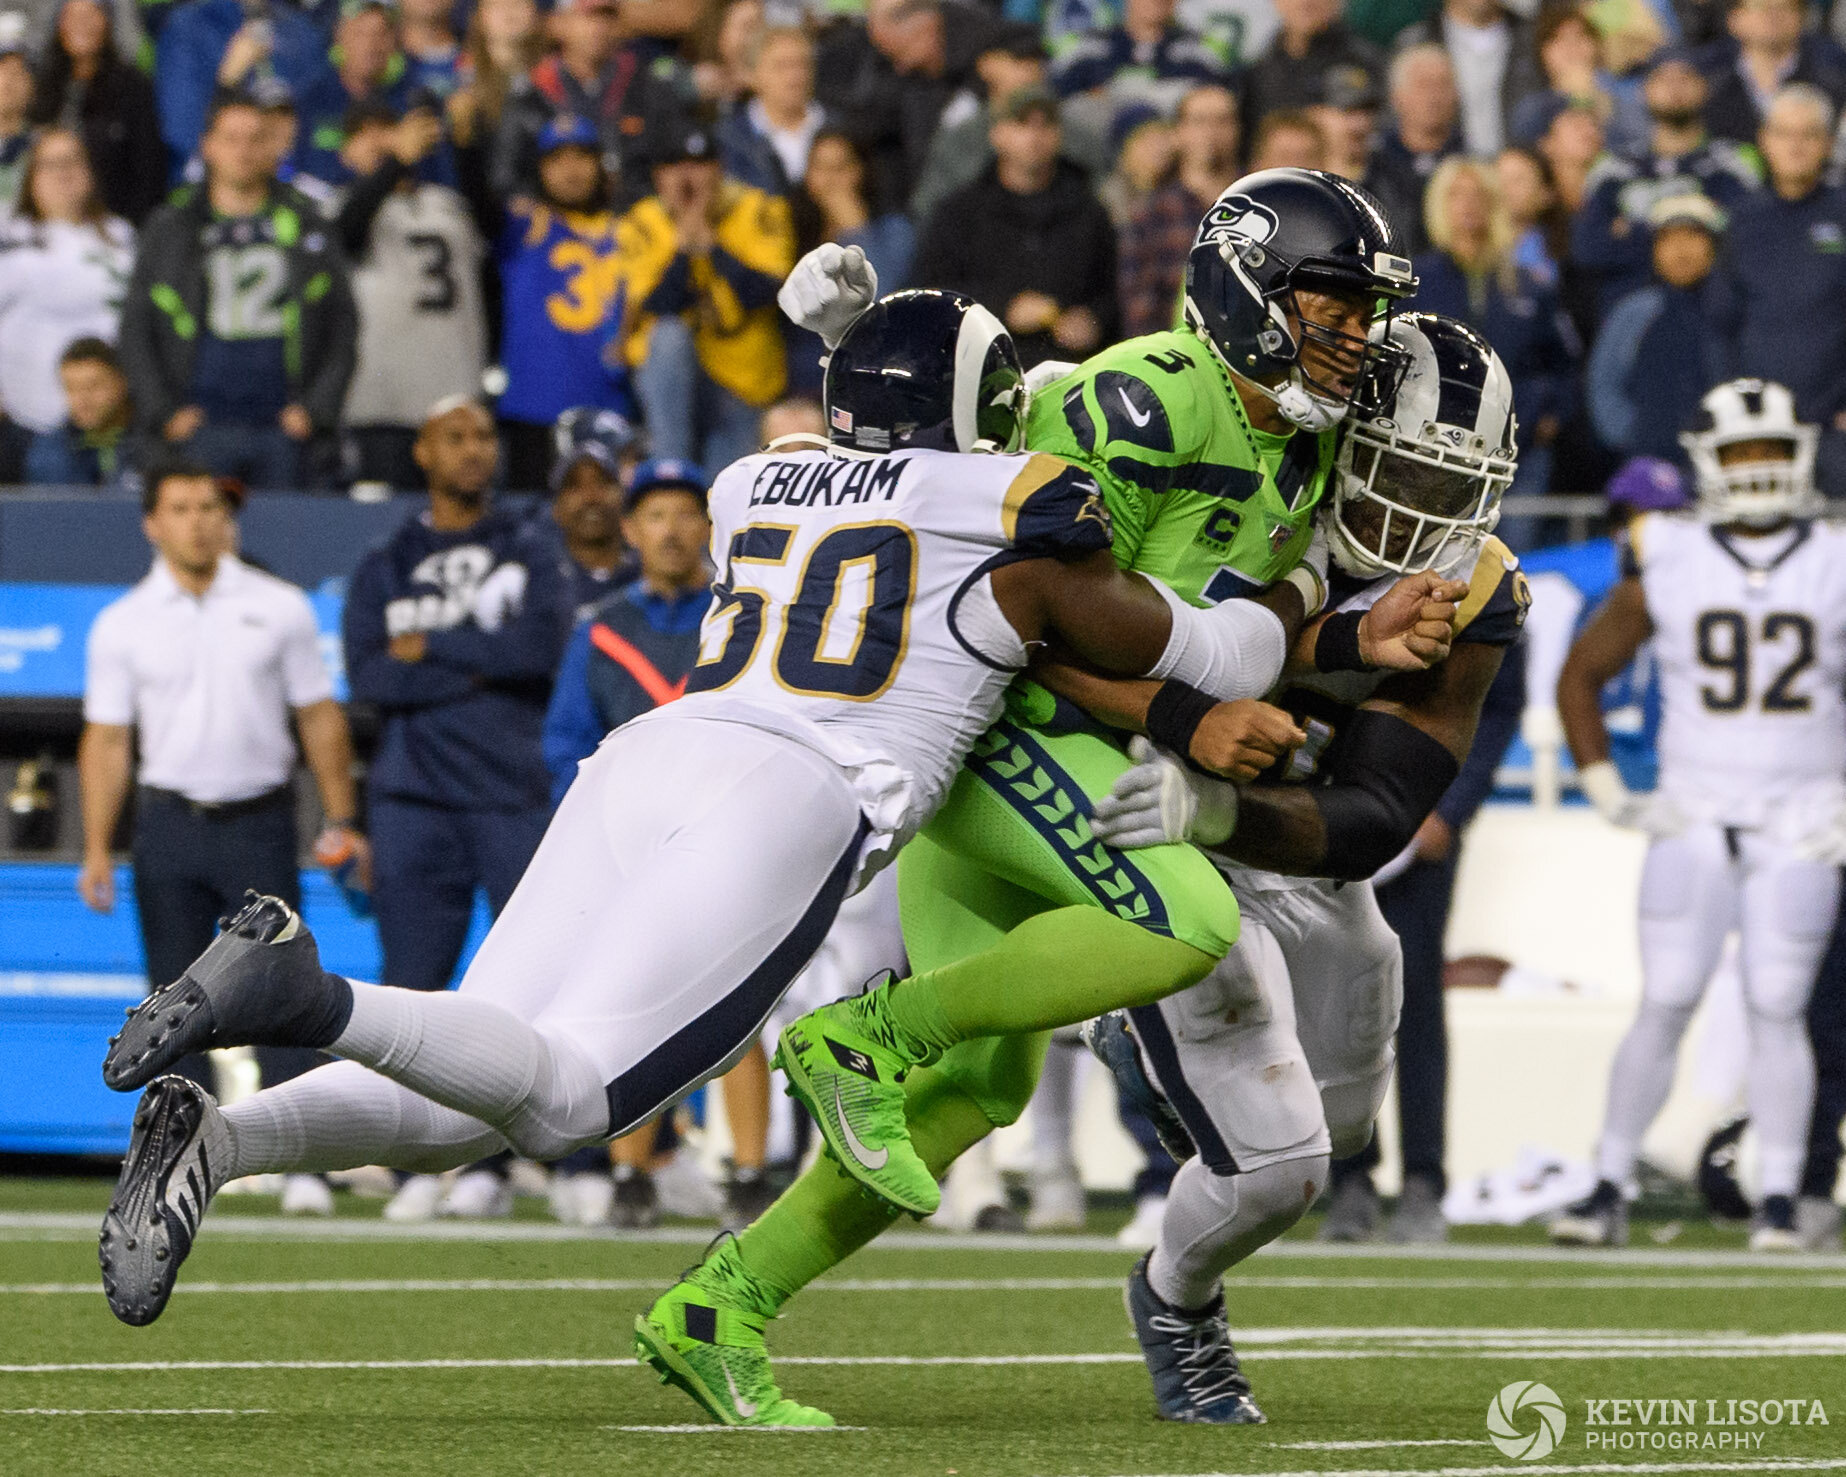 Russell Wilson gets tackled.